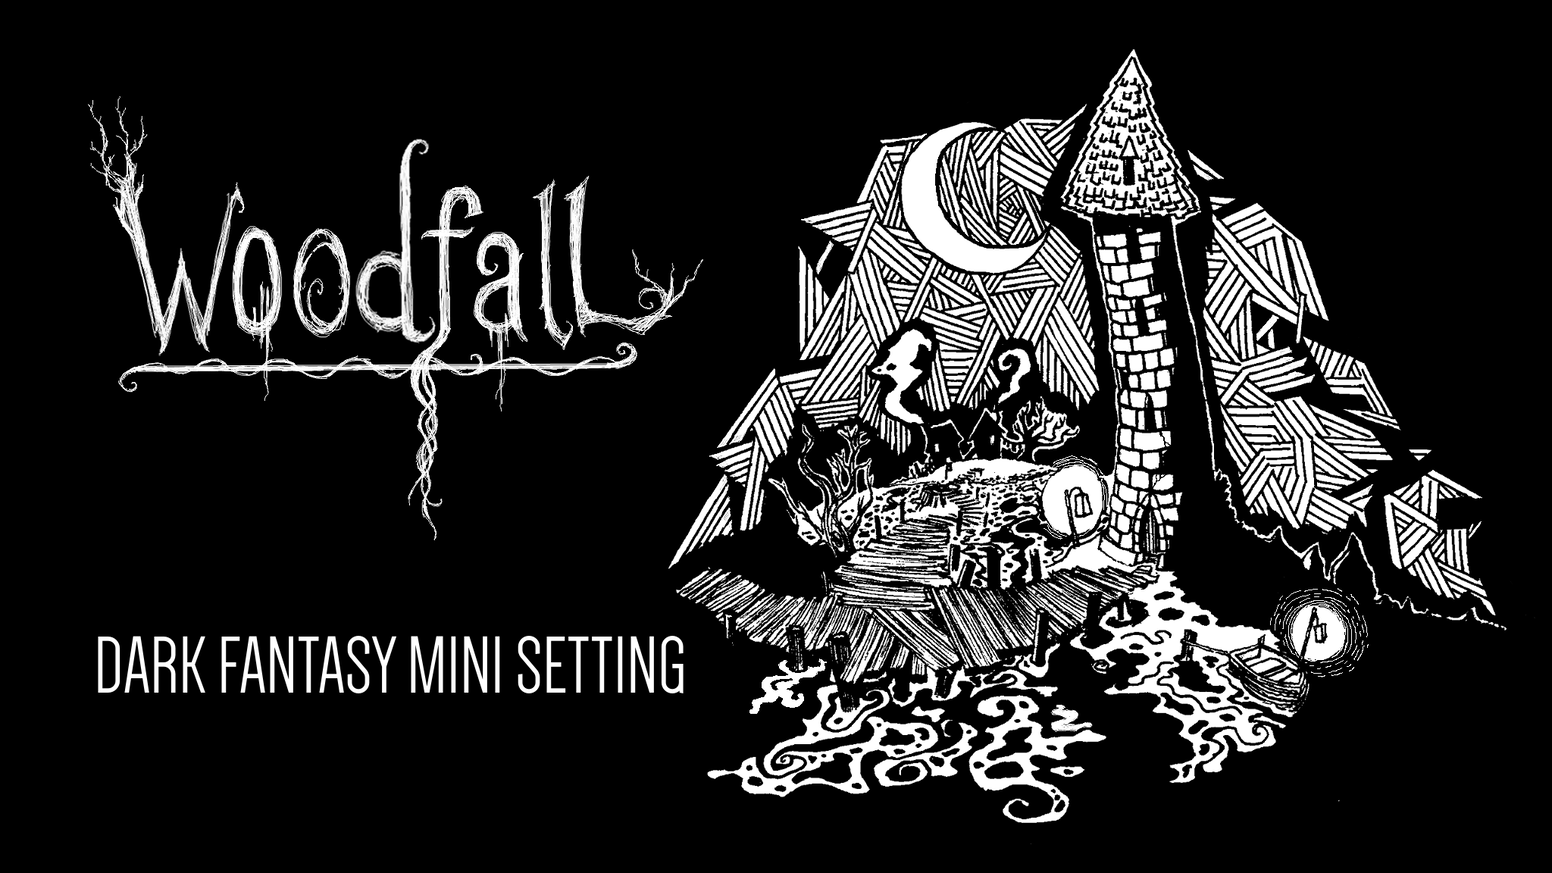 A new system neutral dark fantasy setting that you can drop into your game.